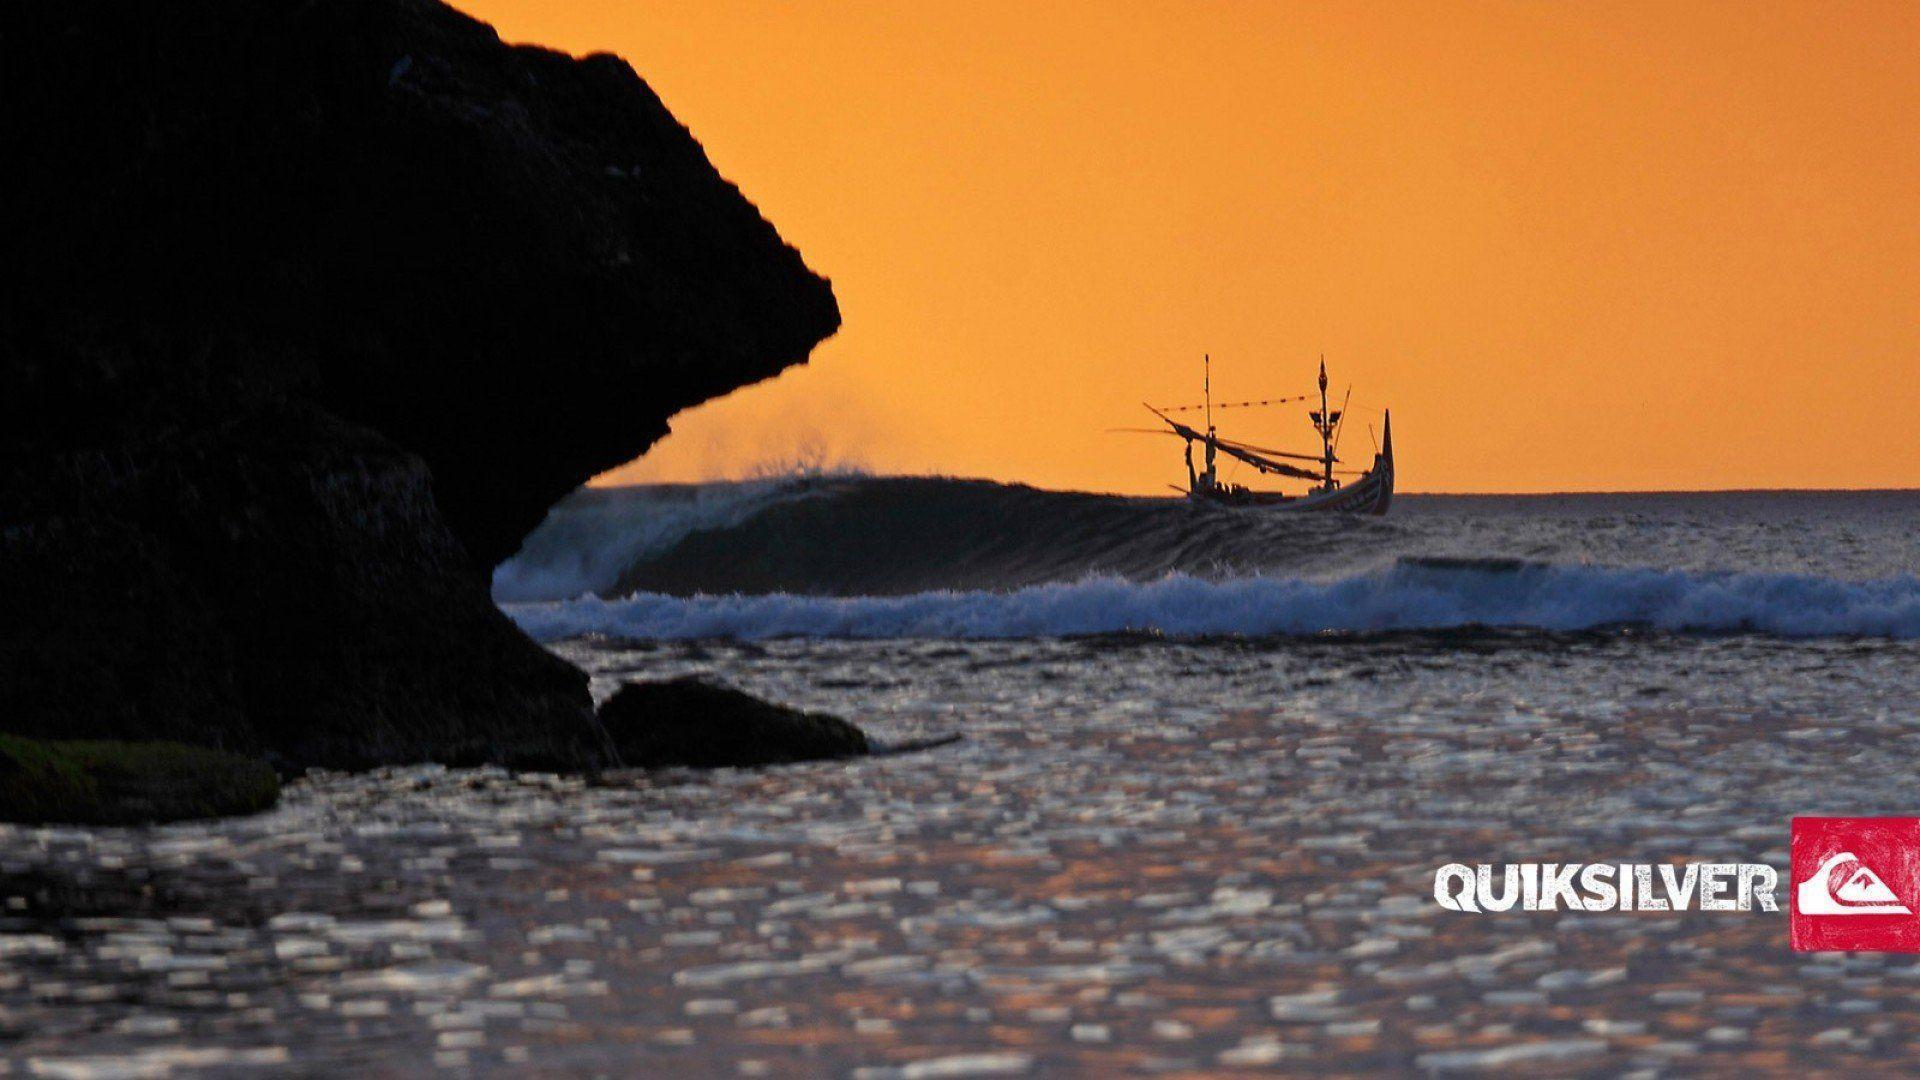 Superb HD Quality Wallpaper's Collection: Quiksilver Wallpaper (36 ...